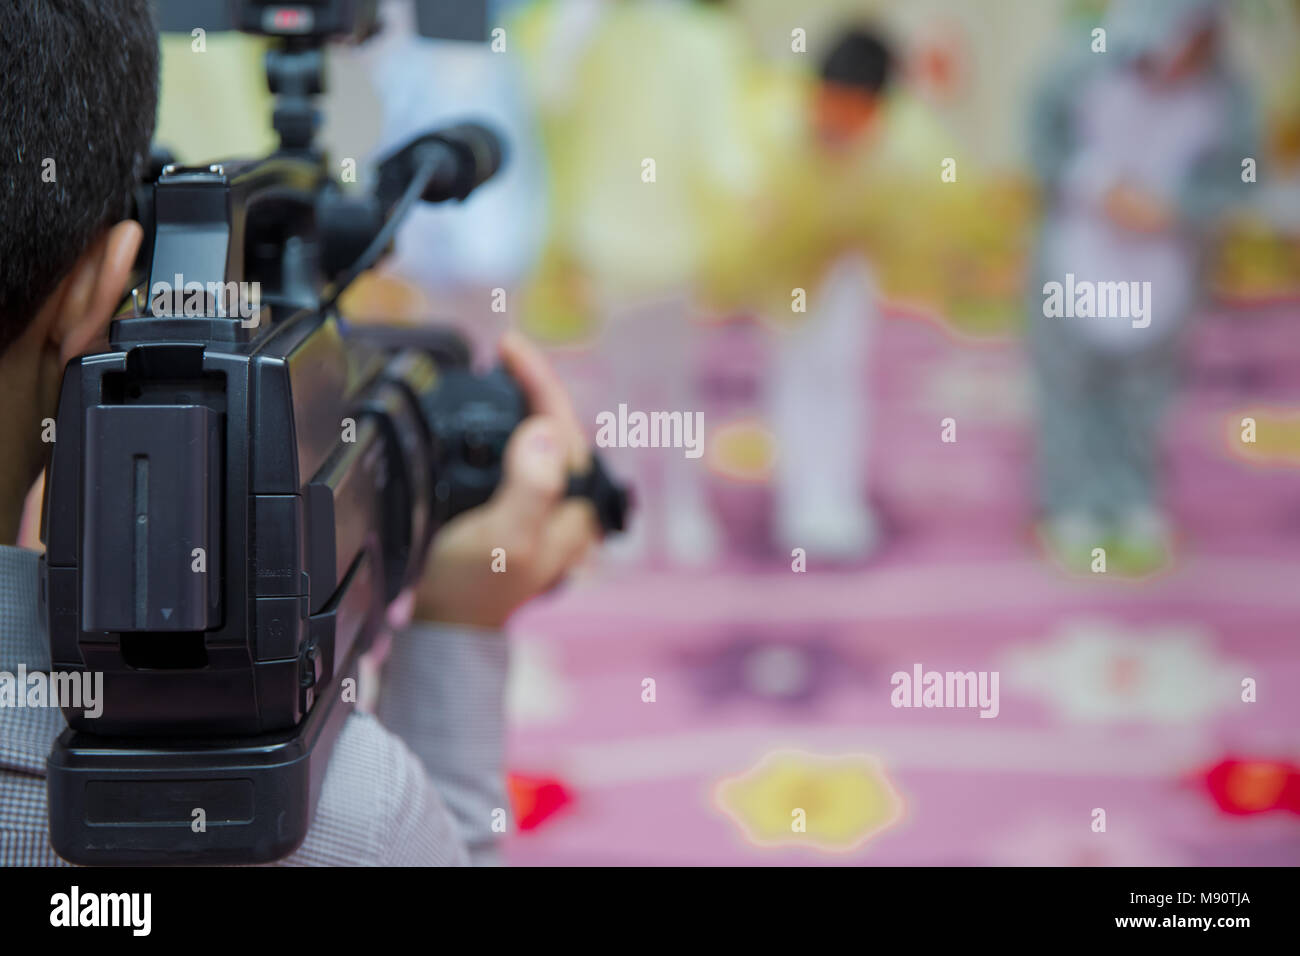 Professional Video camera operator working his equipment video, camera, media blurred background . - Stock Image